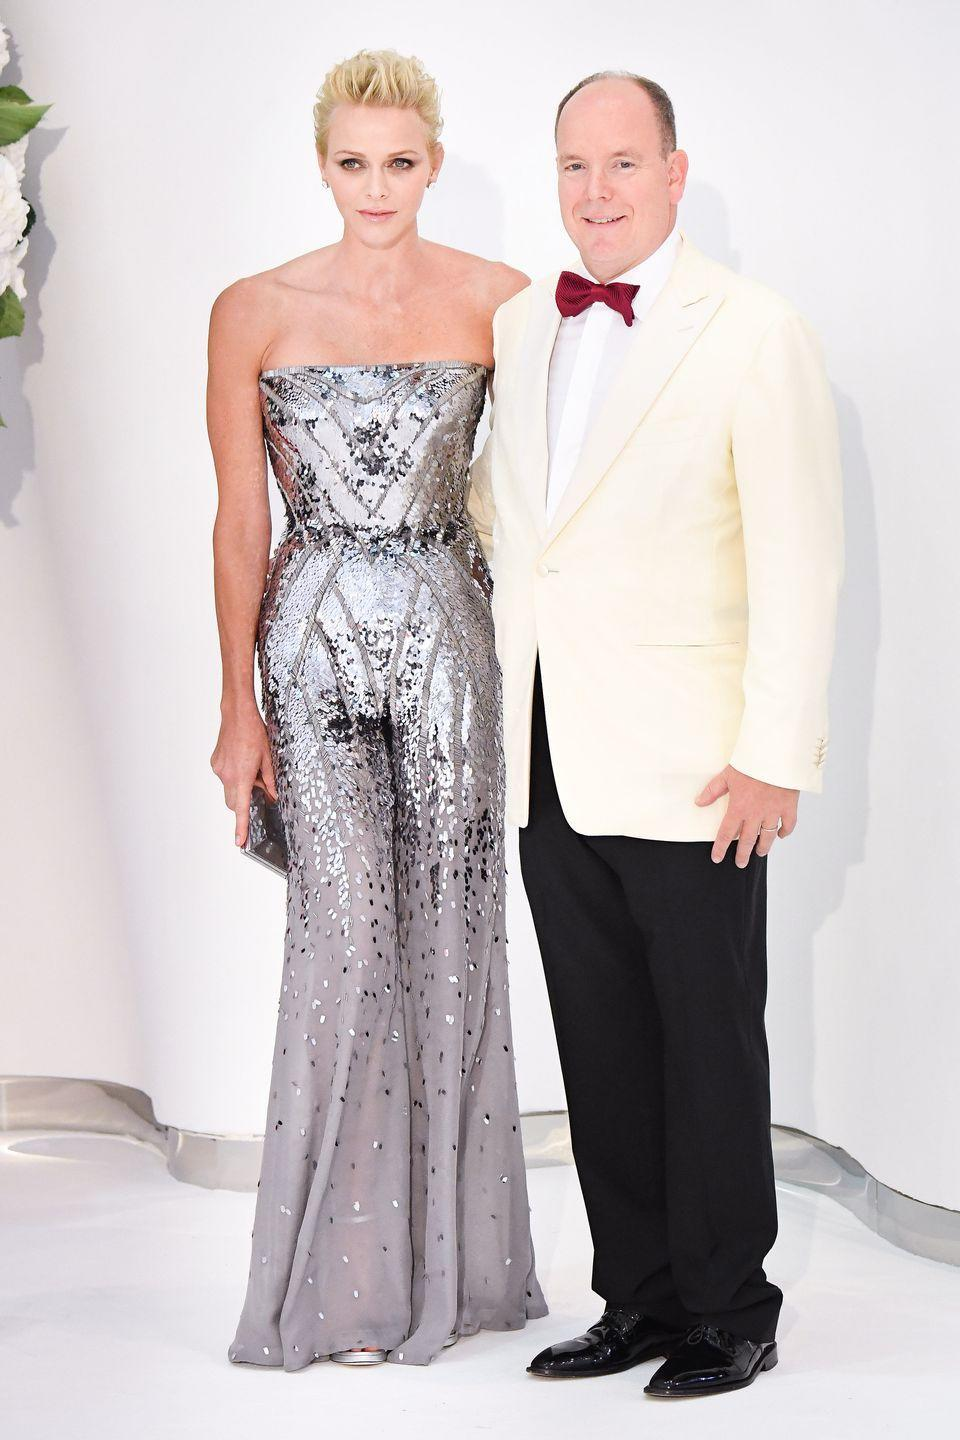 <p>Wittstock, a former South African Olympic swimmer, wed Albert II, Prince of Monaco in 2011. The couple met at a swimming competition in Monaco in 2000 and became engaged ten years later. </p>